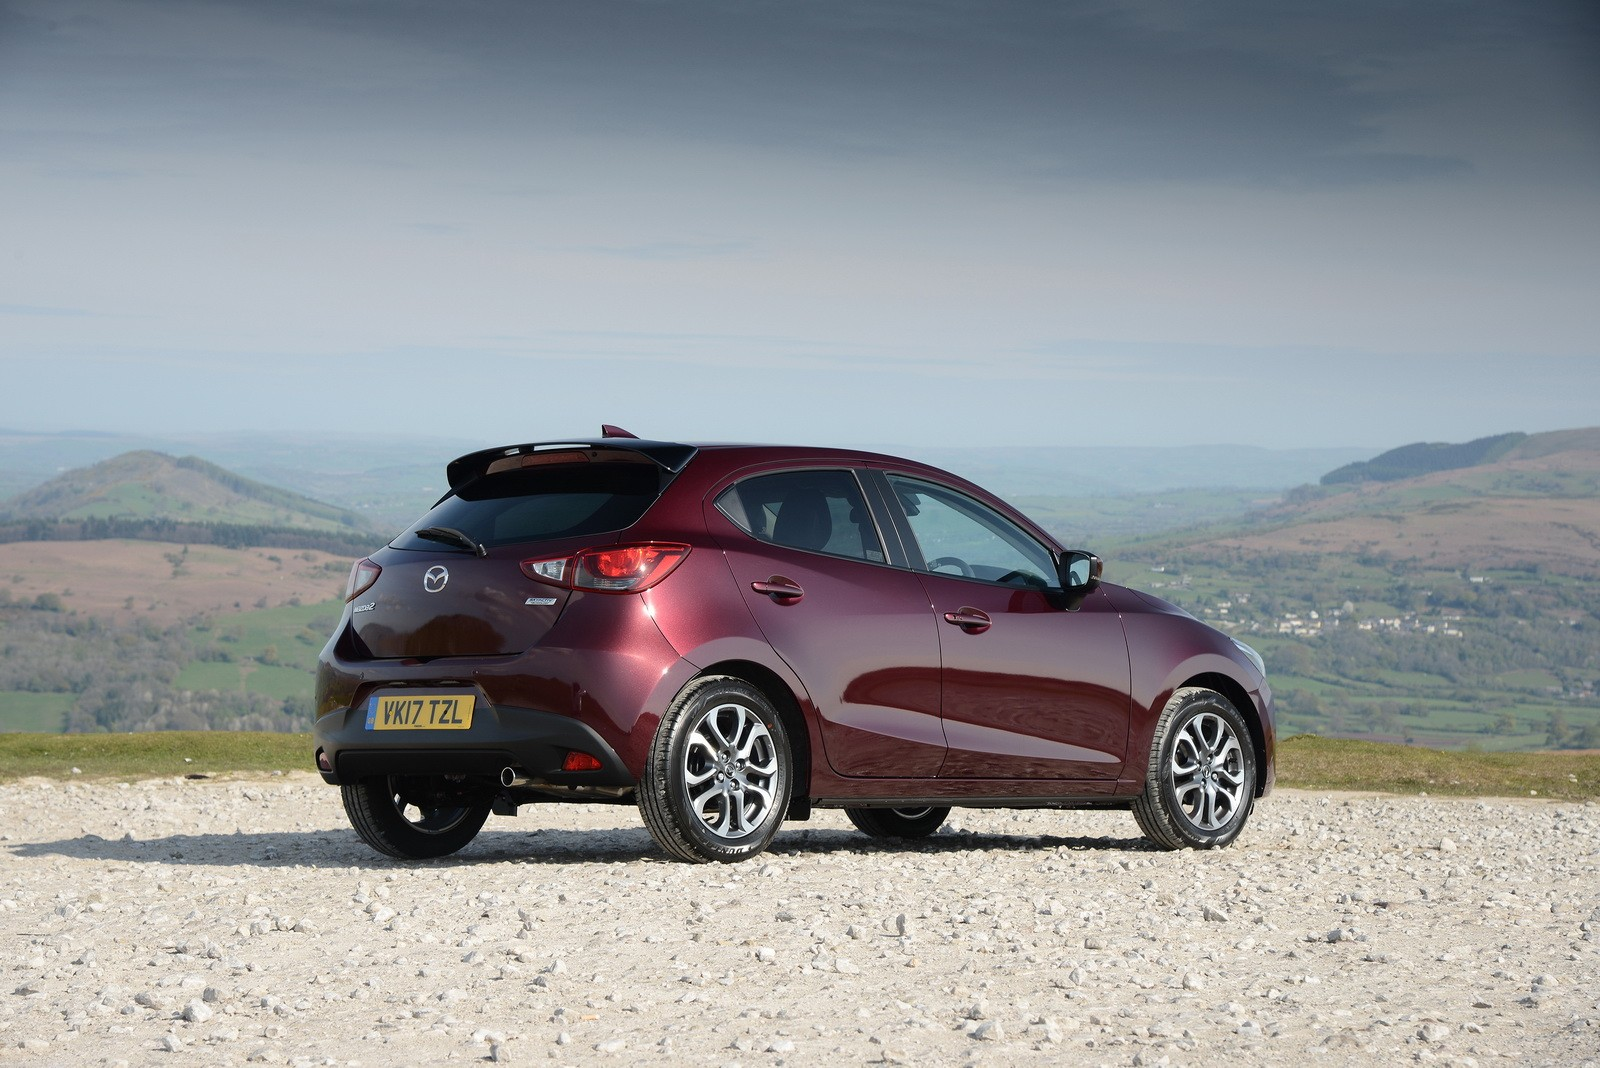 Limited Edition Mazda2 Model Joins Updated Lineup In The